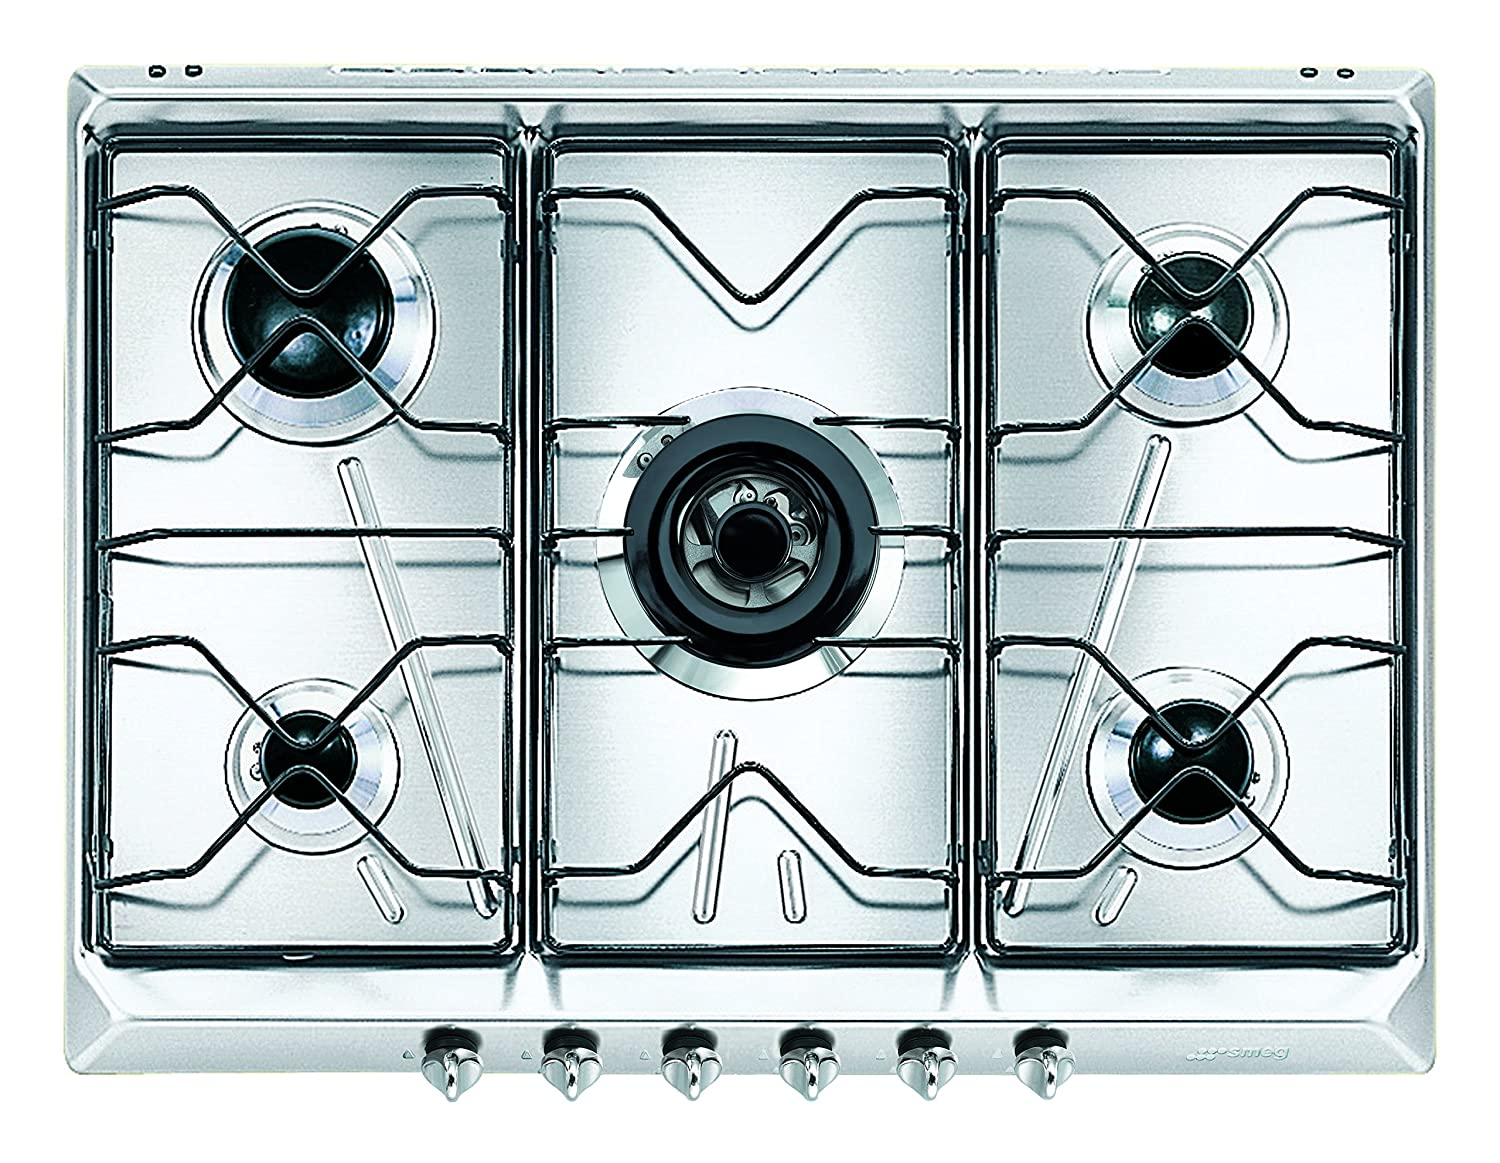 Smeg SRV576-5 Built-in Gas Stainless steel hob - Hobs (Built-in, Gas ...